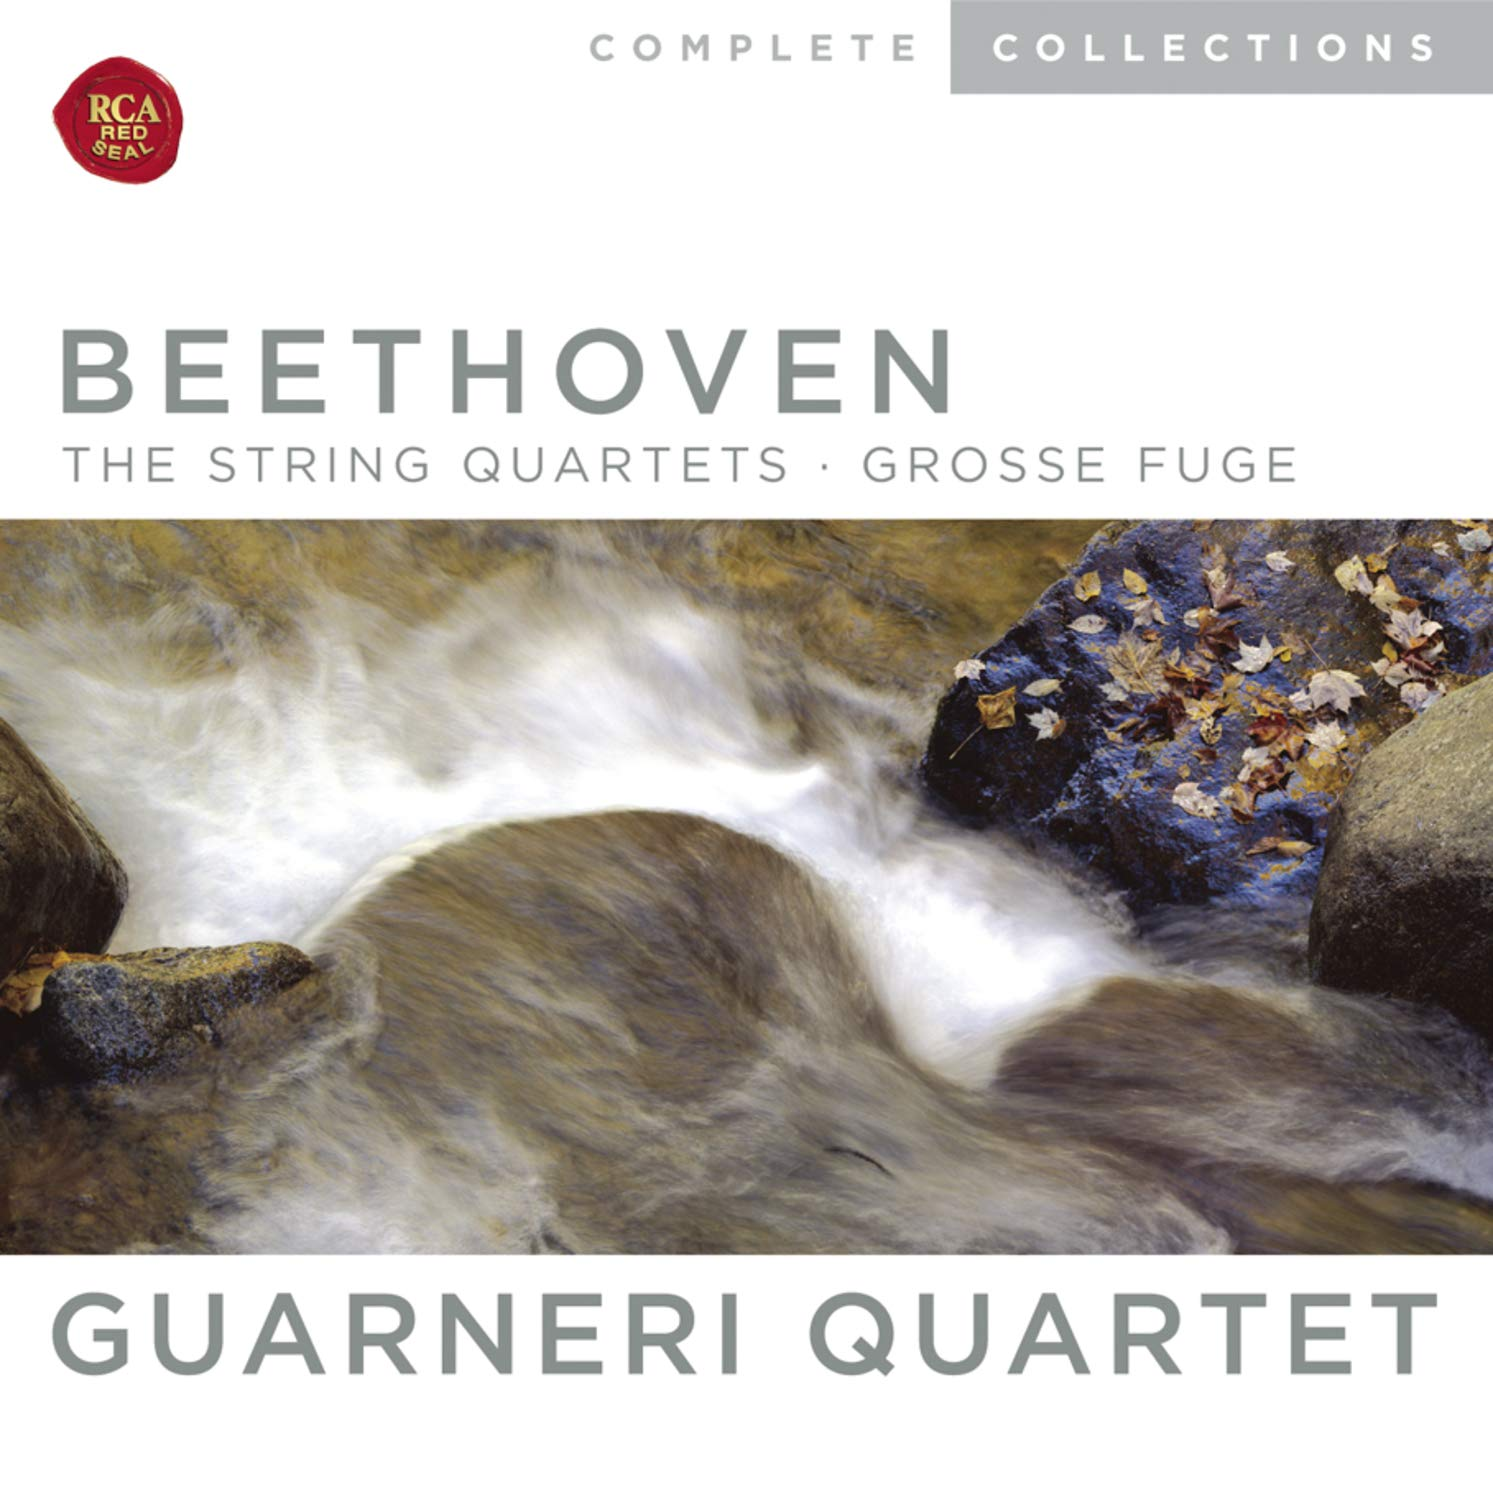 Beethoven: The String Ranking TOP8 Fuge cheap Quartets Grosse